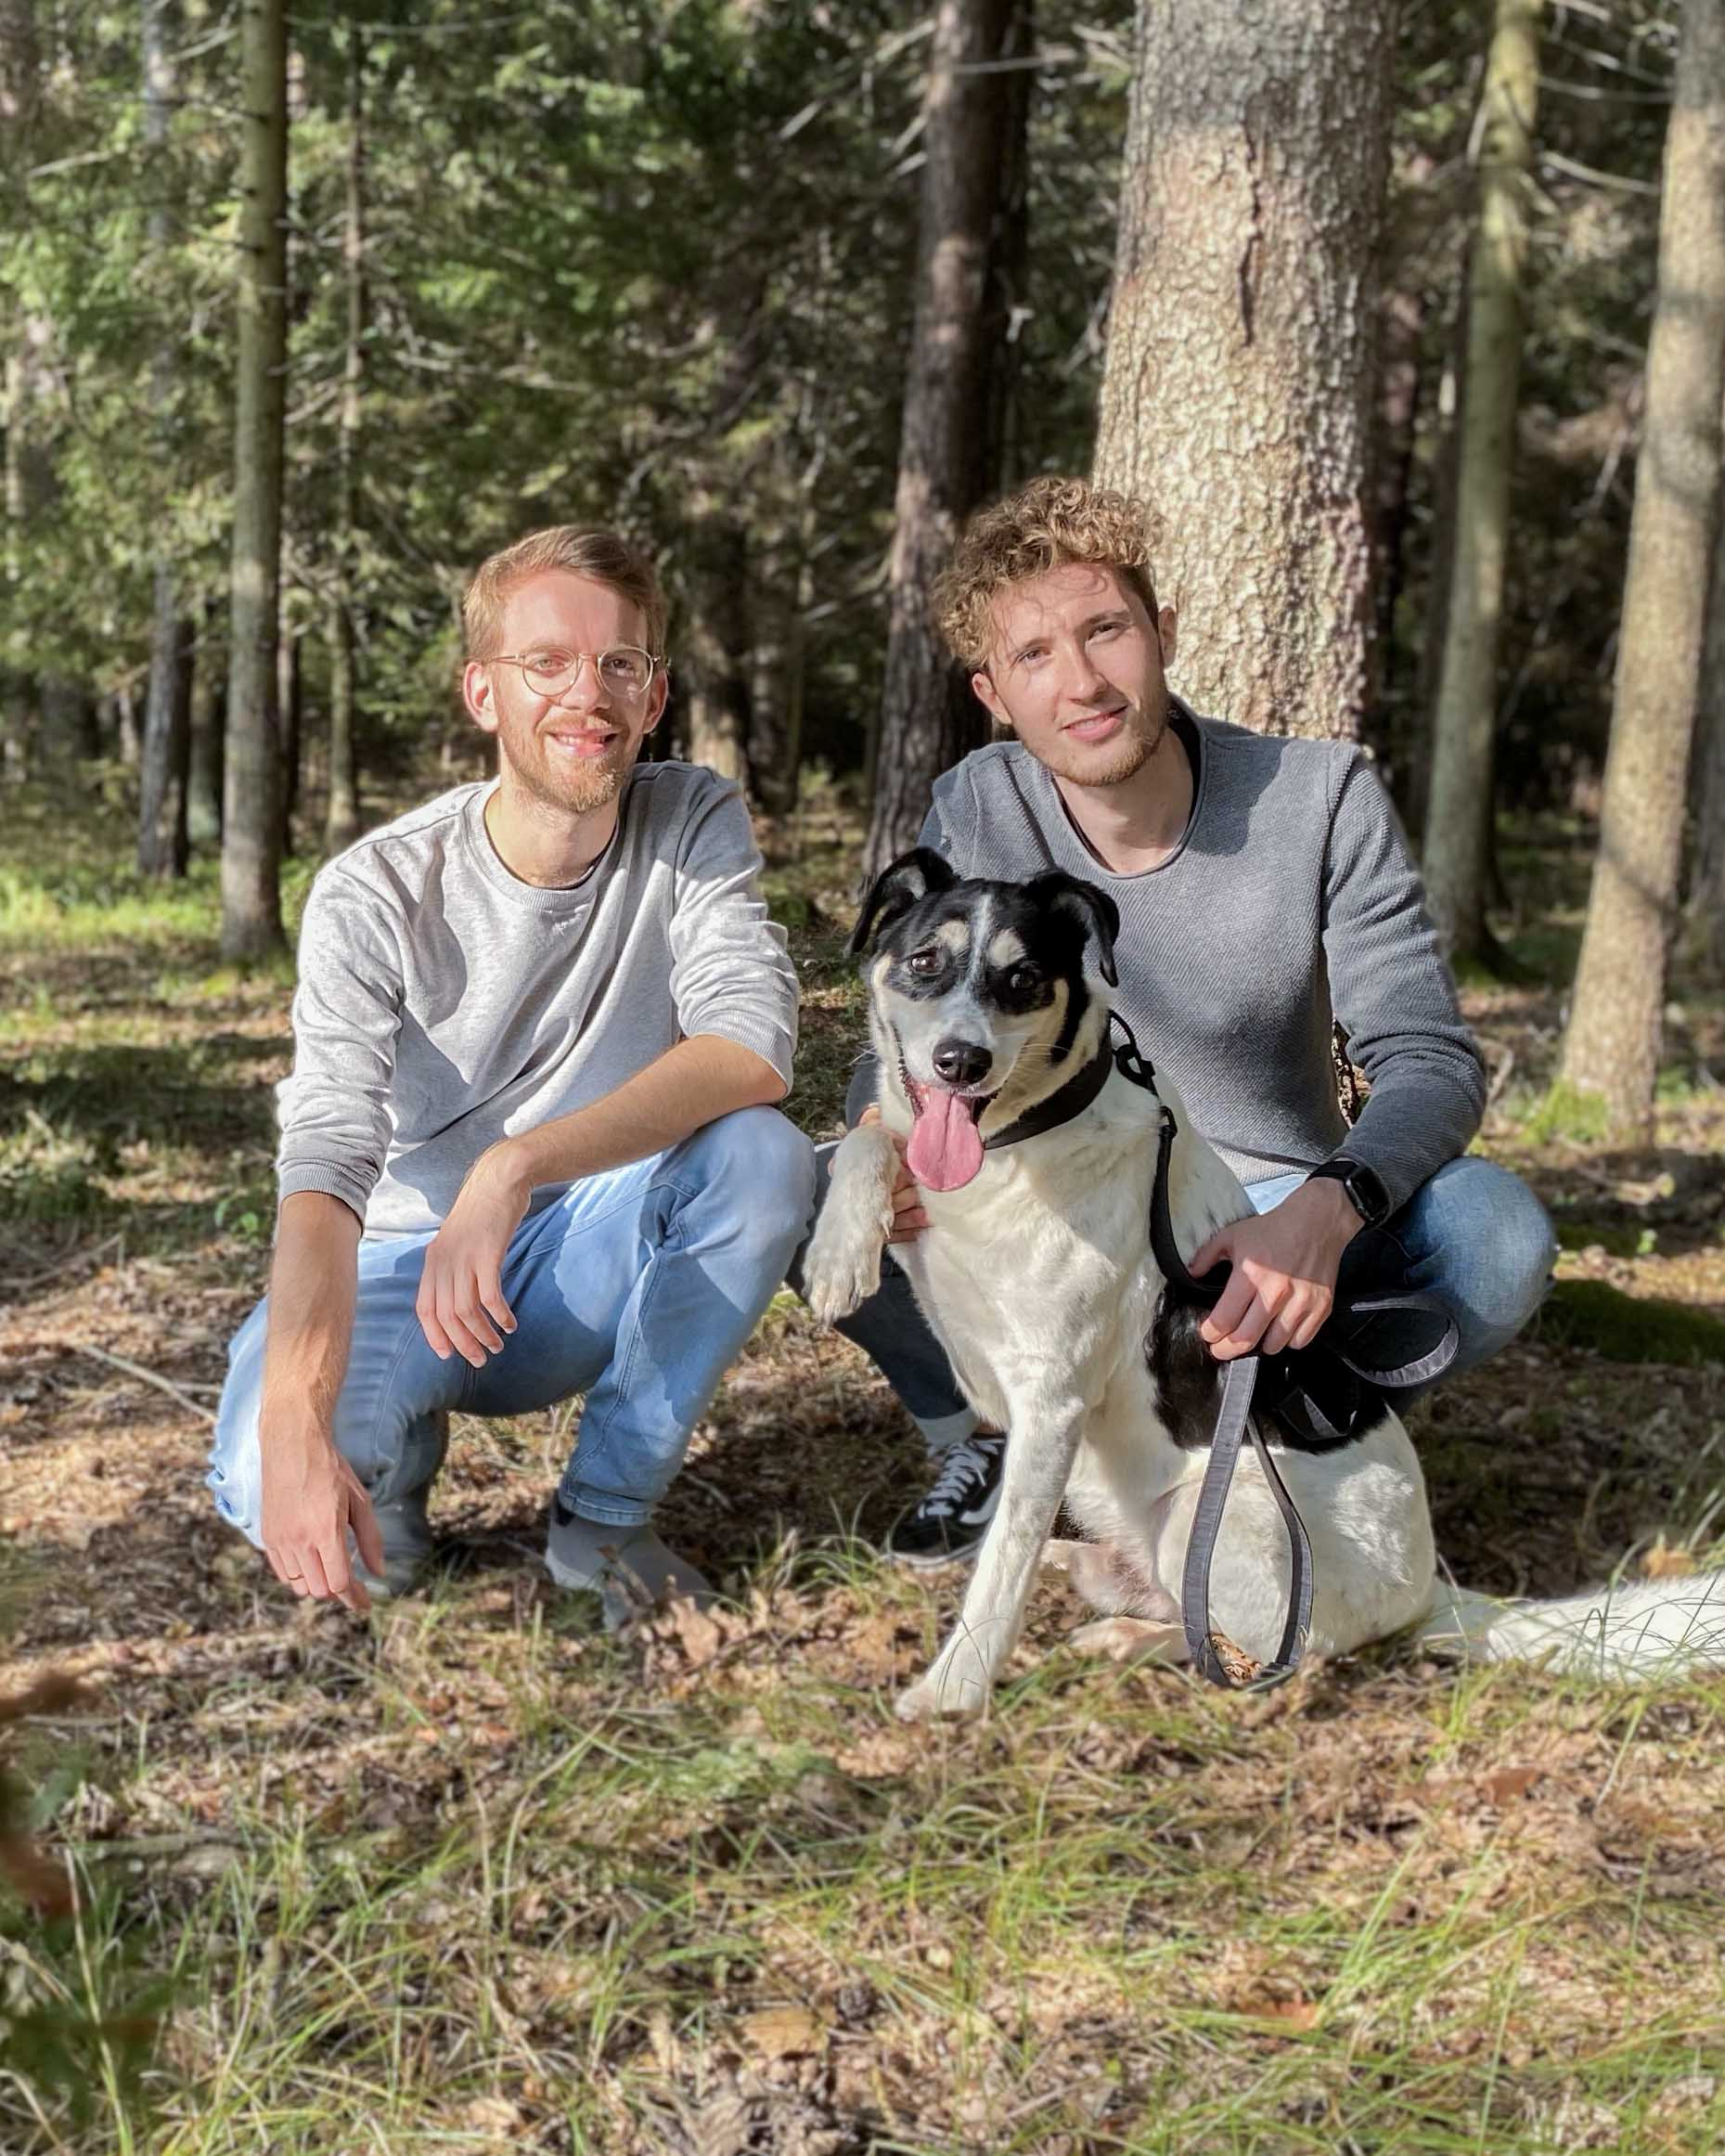 Christian and Lukas are the founders of the german company FollowPaw. Their passion for dogs and sustainable products make FollowPaw a unique and inspiring brand.